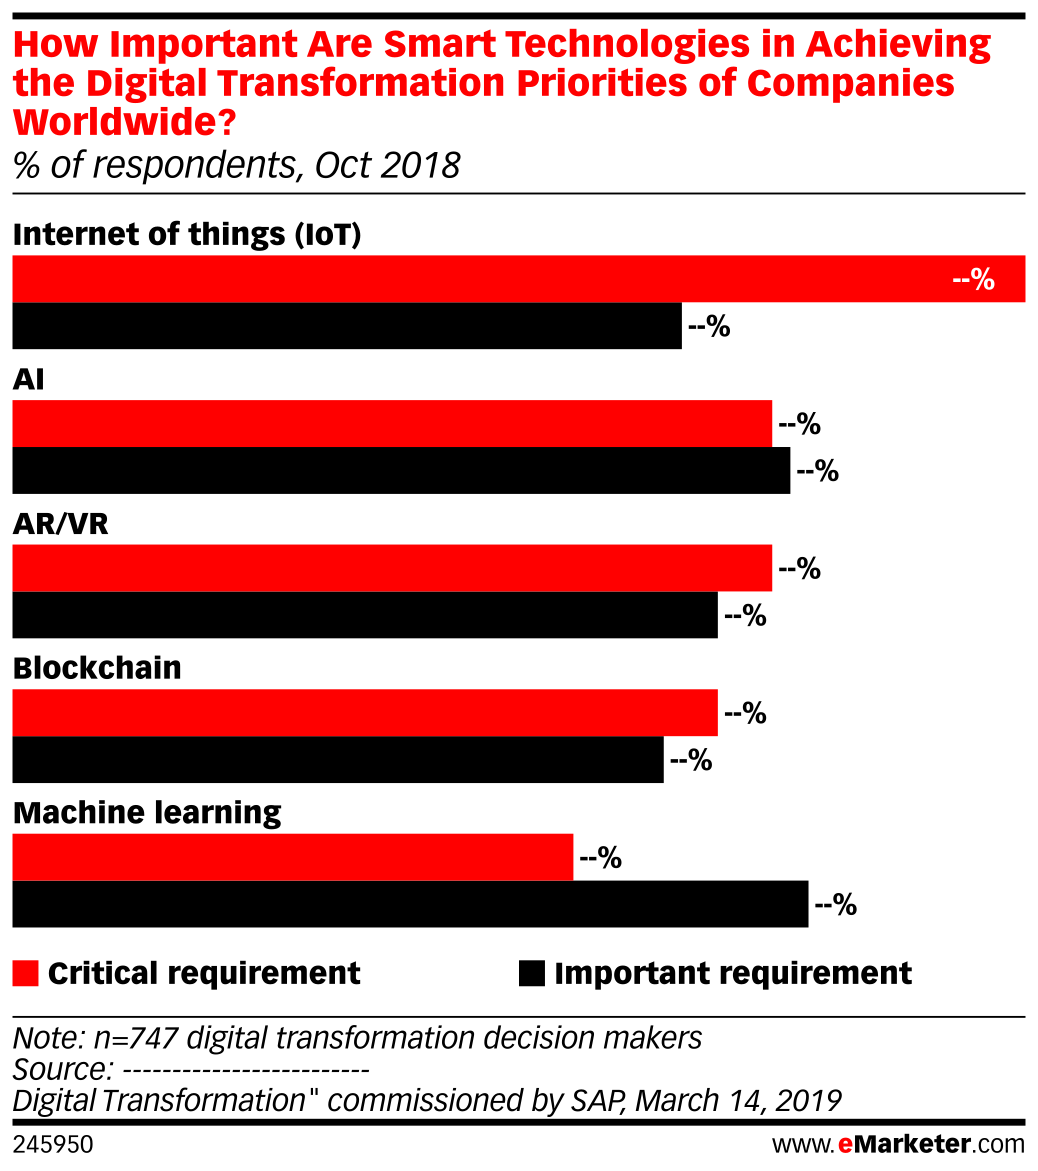 How Important Are Smart Technologies in Achieving the Digital Transformation Priorities of Companies Worldwide? (% of respondents, Oct 2018)